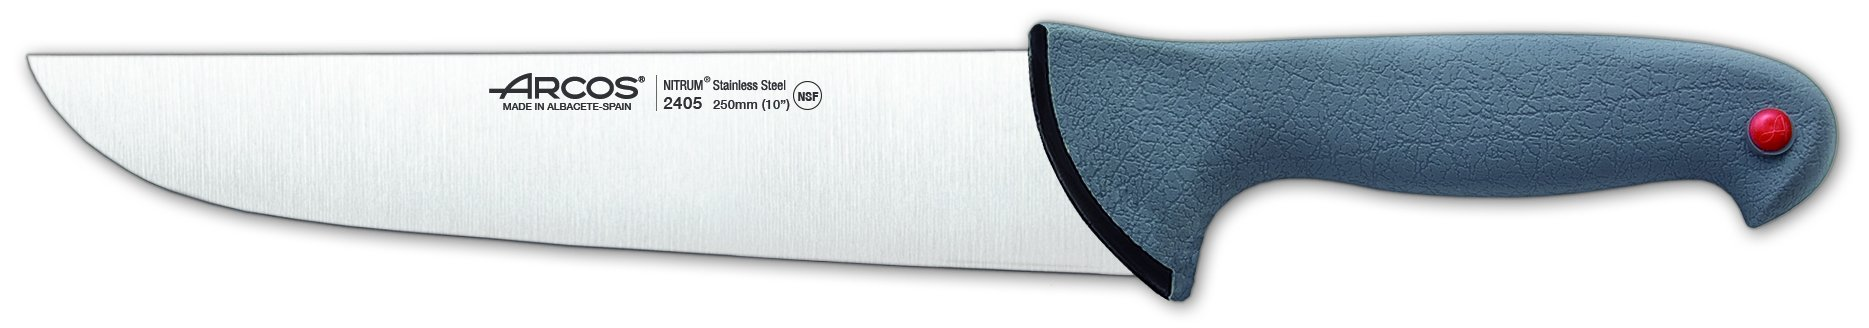 Arcos 10-Inch 250 mm Colour-Prof Butcher Knife